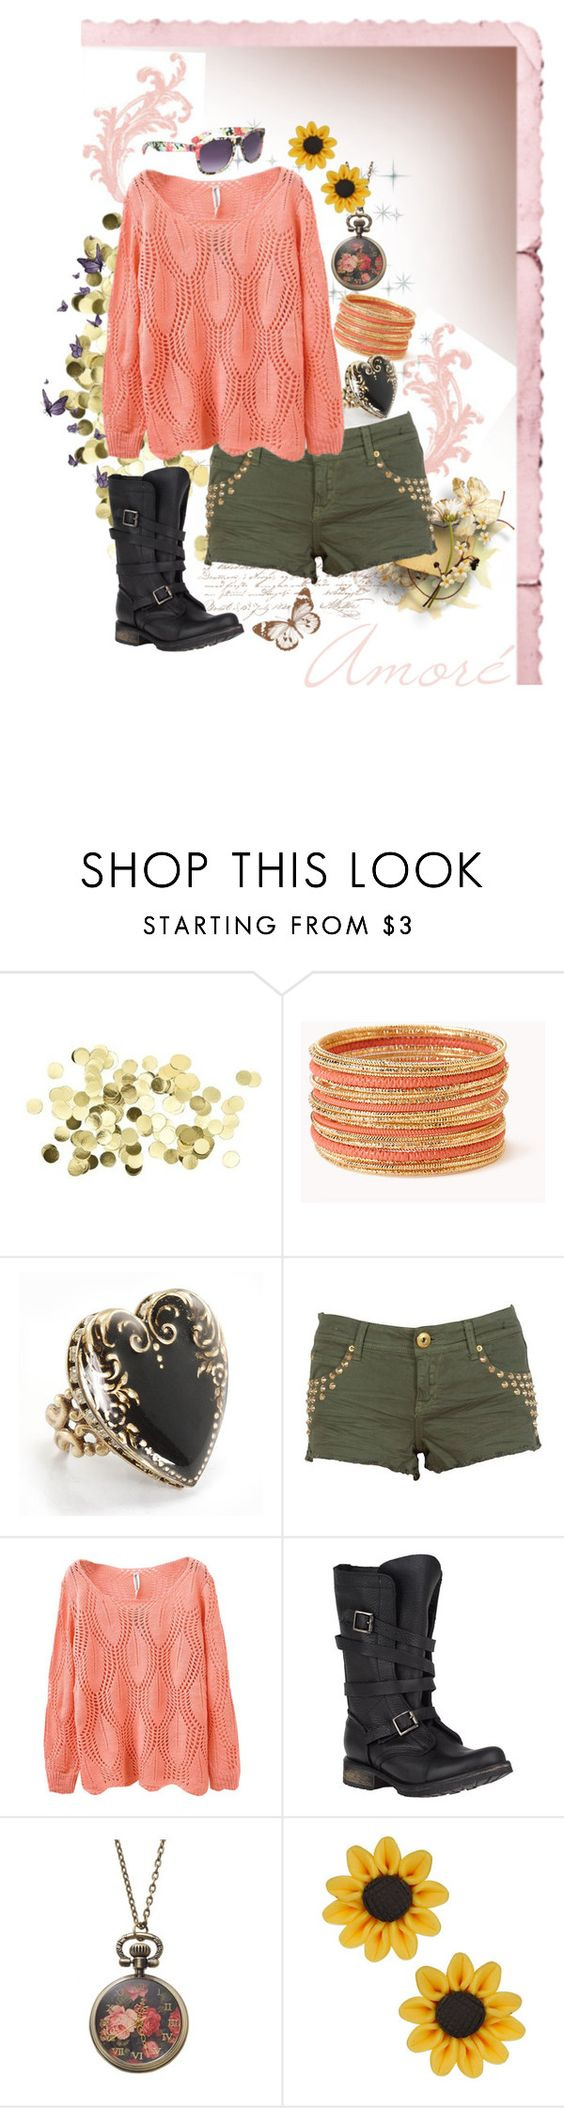 """Amoré"" by faleur102 ❤ liked on Polyvore featuring Forever 21, Sweet Romance, Steve Madden, Sole Society, love, Pink, Boots and amore"